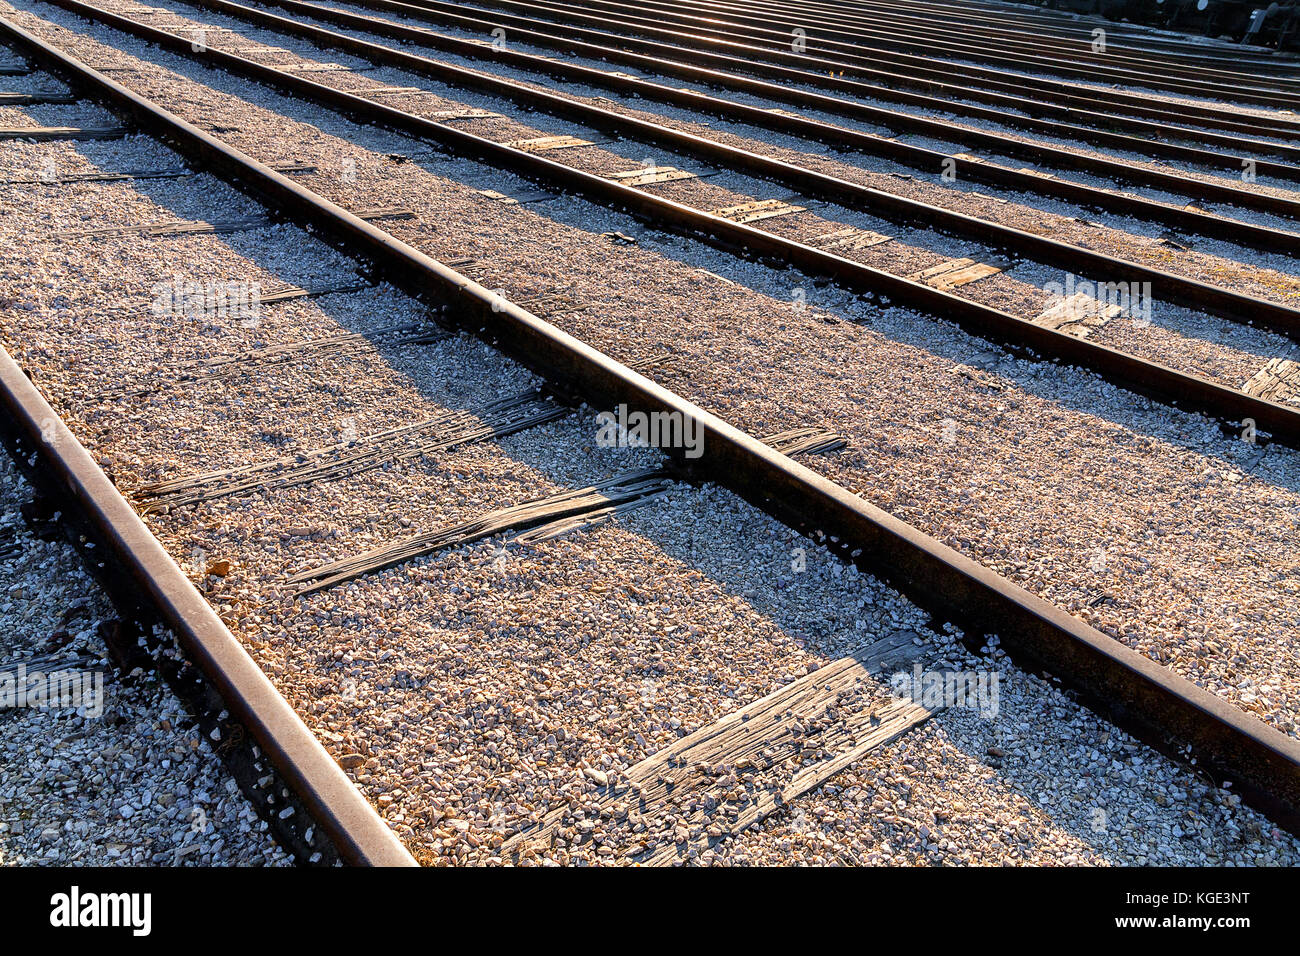 Train Track Perspective Stock Photos Amp Train Track